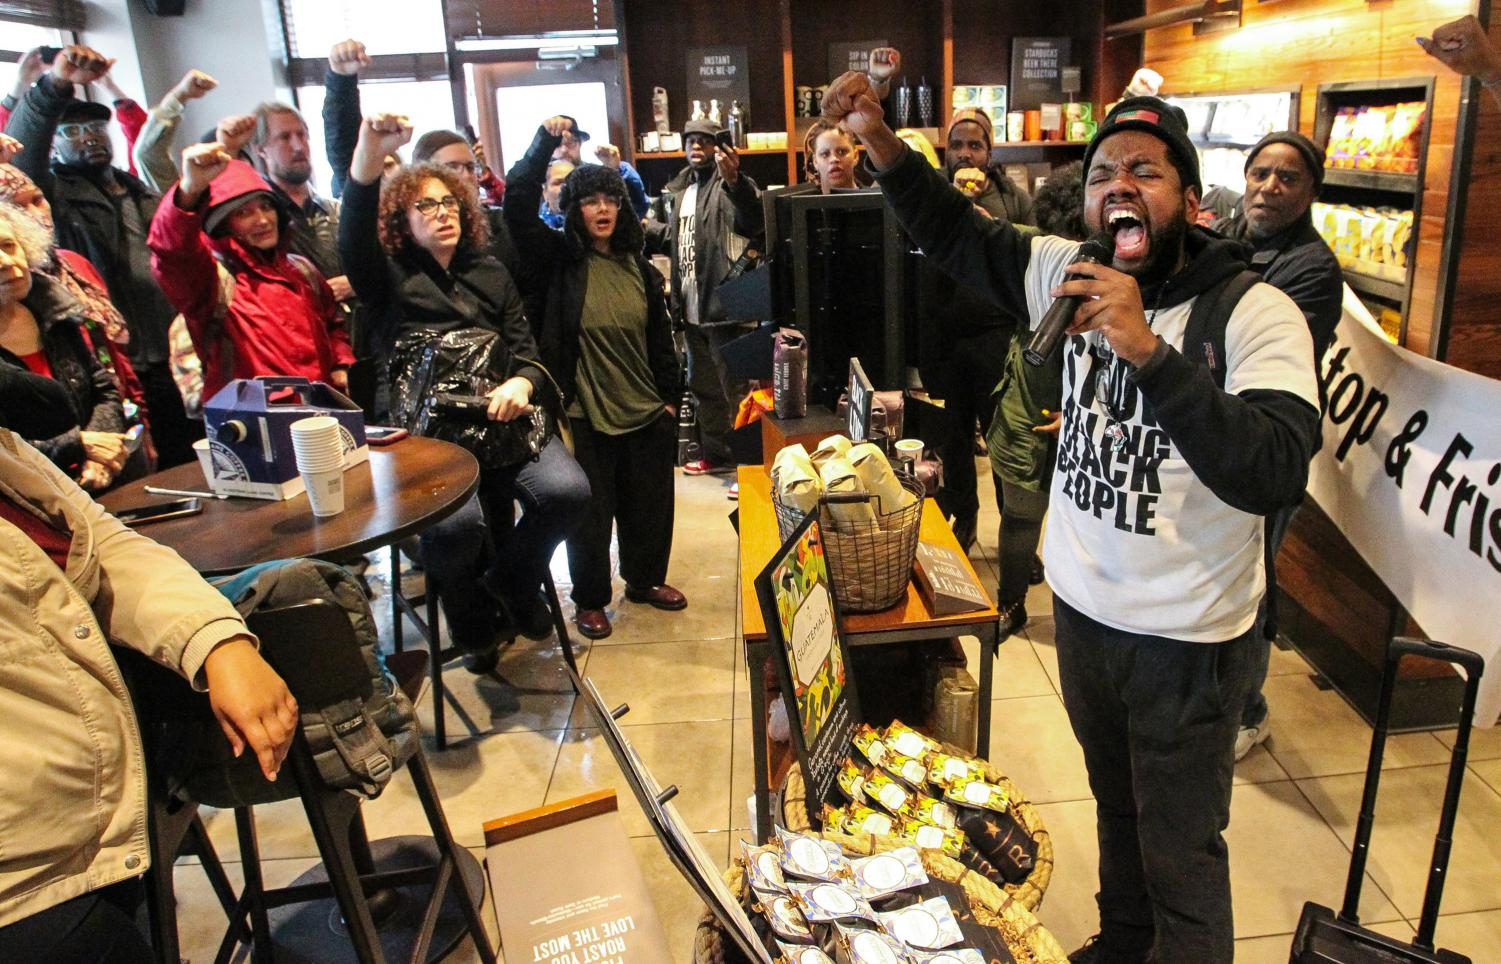 Anthony Smith, right, speaks out during the protest at Starbucks in Philadelphia.